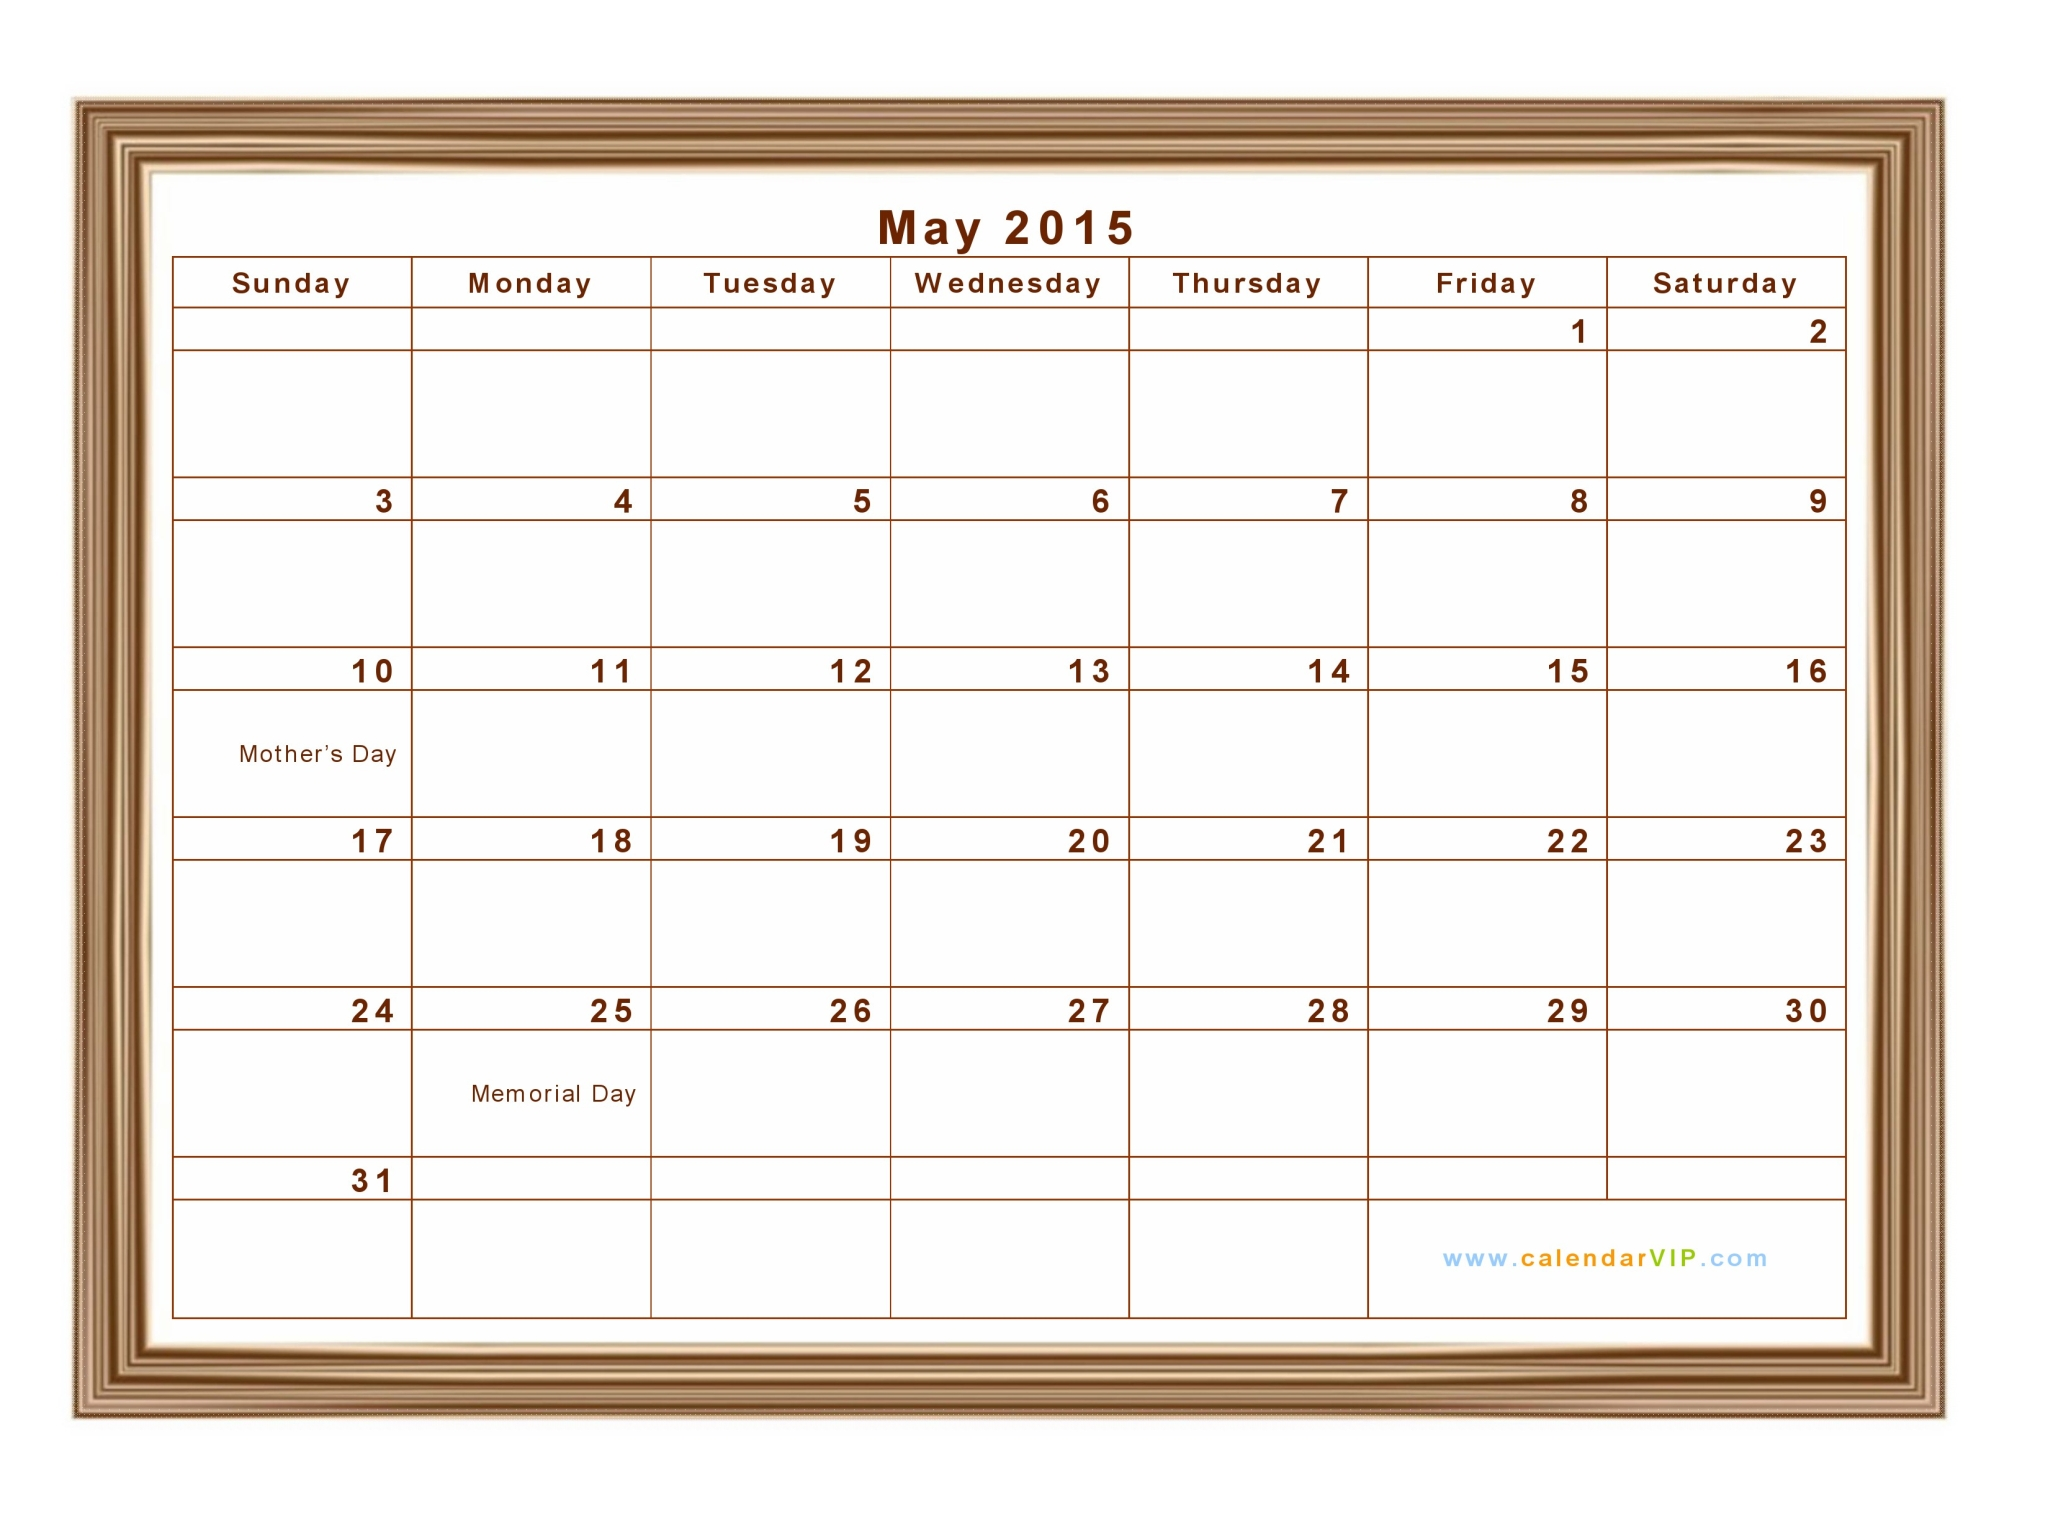 May Calendar Pieces : Calendar in excel format with week numbers